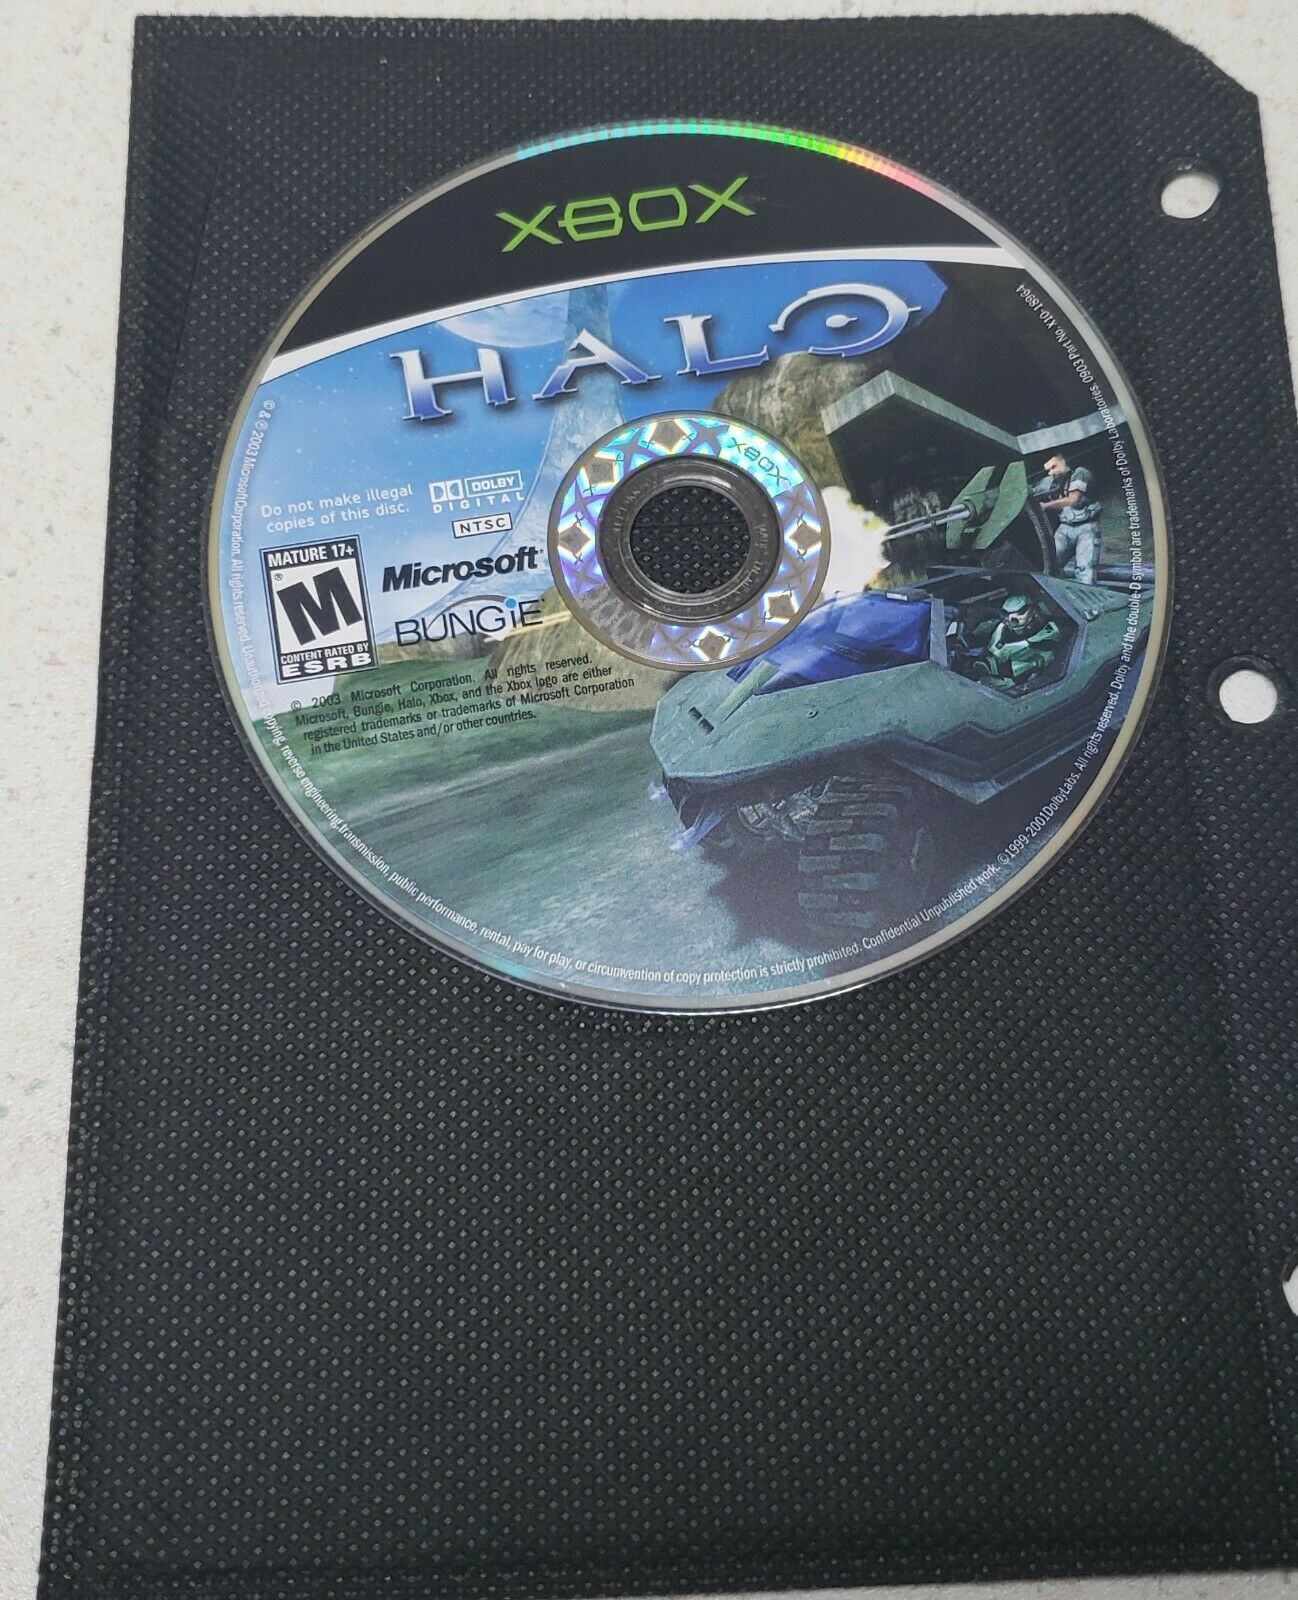 Primary image for Halo: Combat Evolved - Microsoft Xbox, 2003 Game of the year USED, (Disc ONLY)